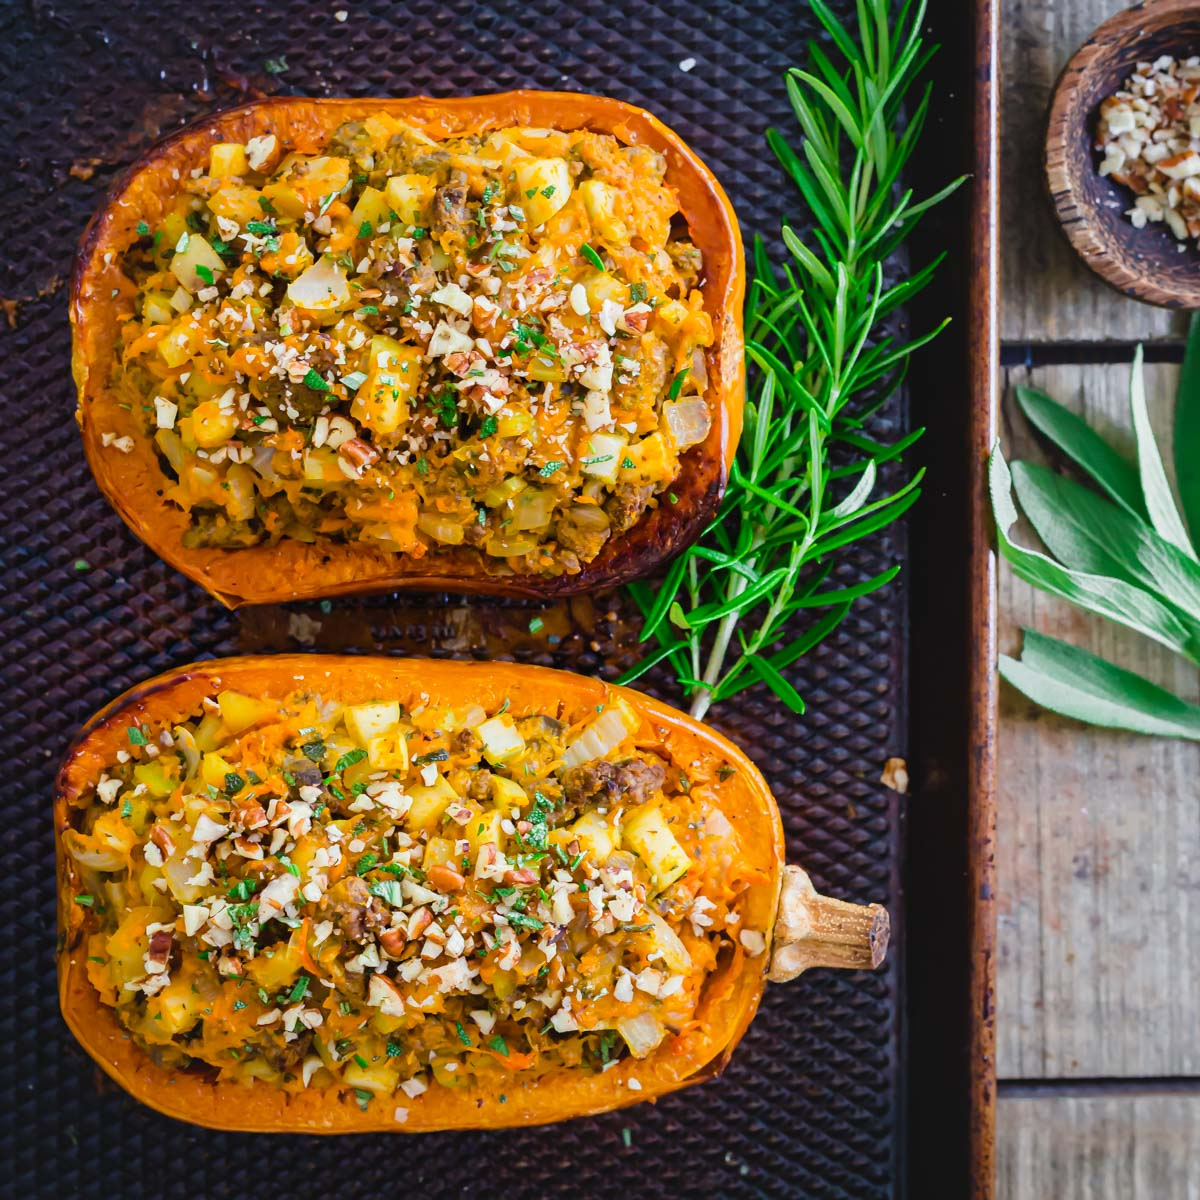 Roasted honeynut squash stuffed with an easy ground meat and rosemary flavored filling.